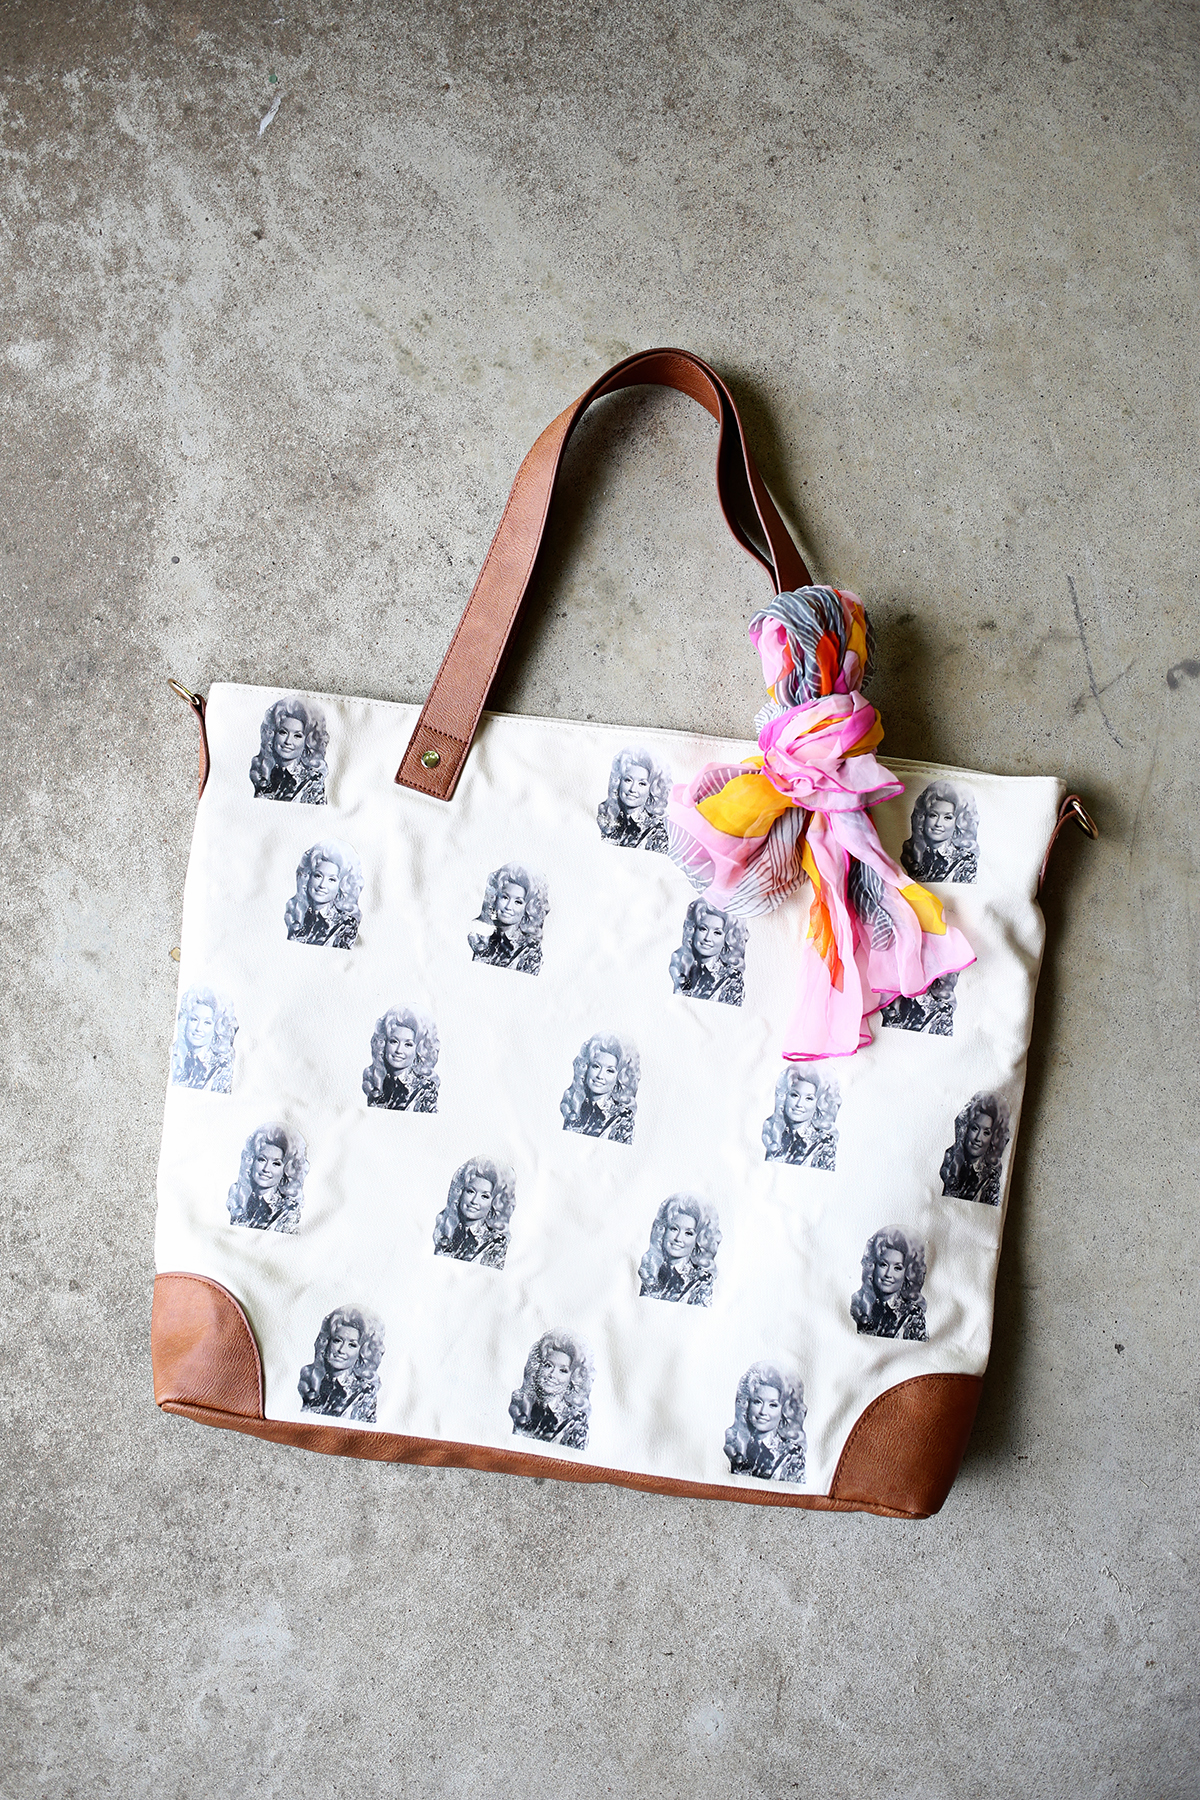 DIY Dolly Parton Bag